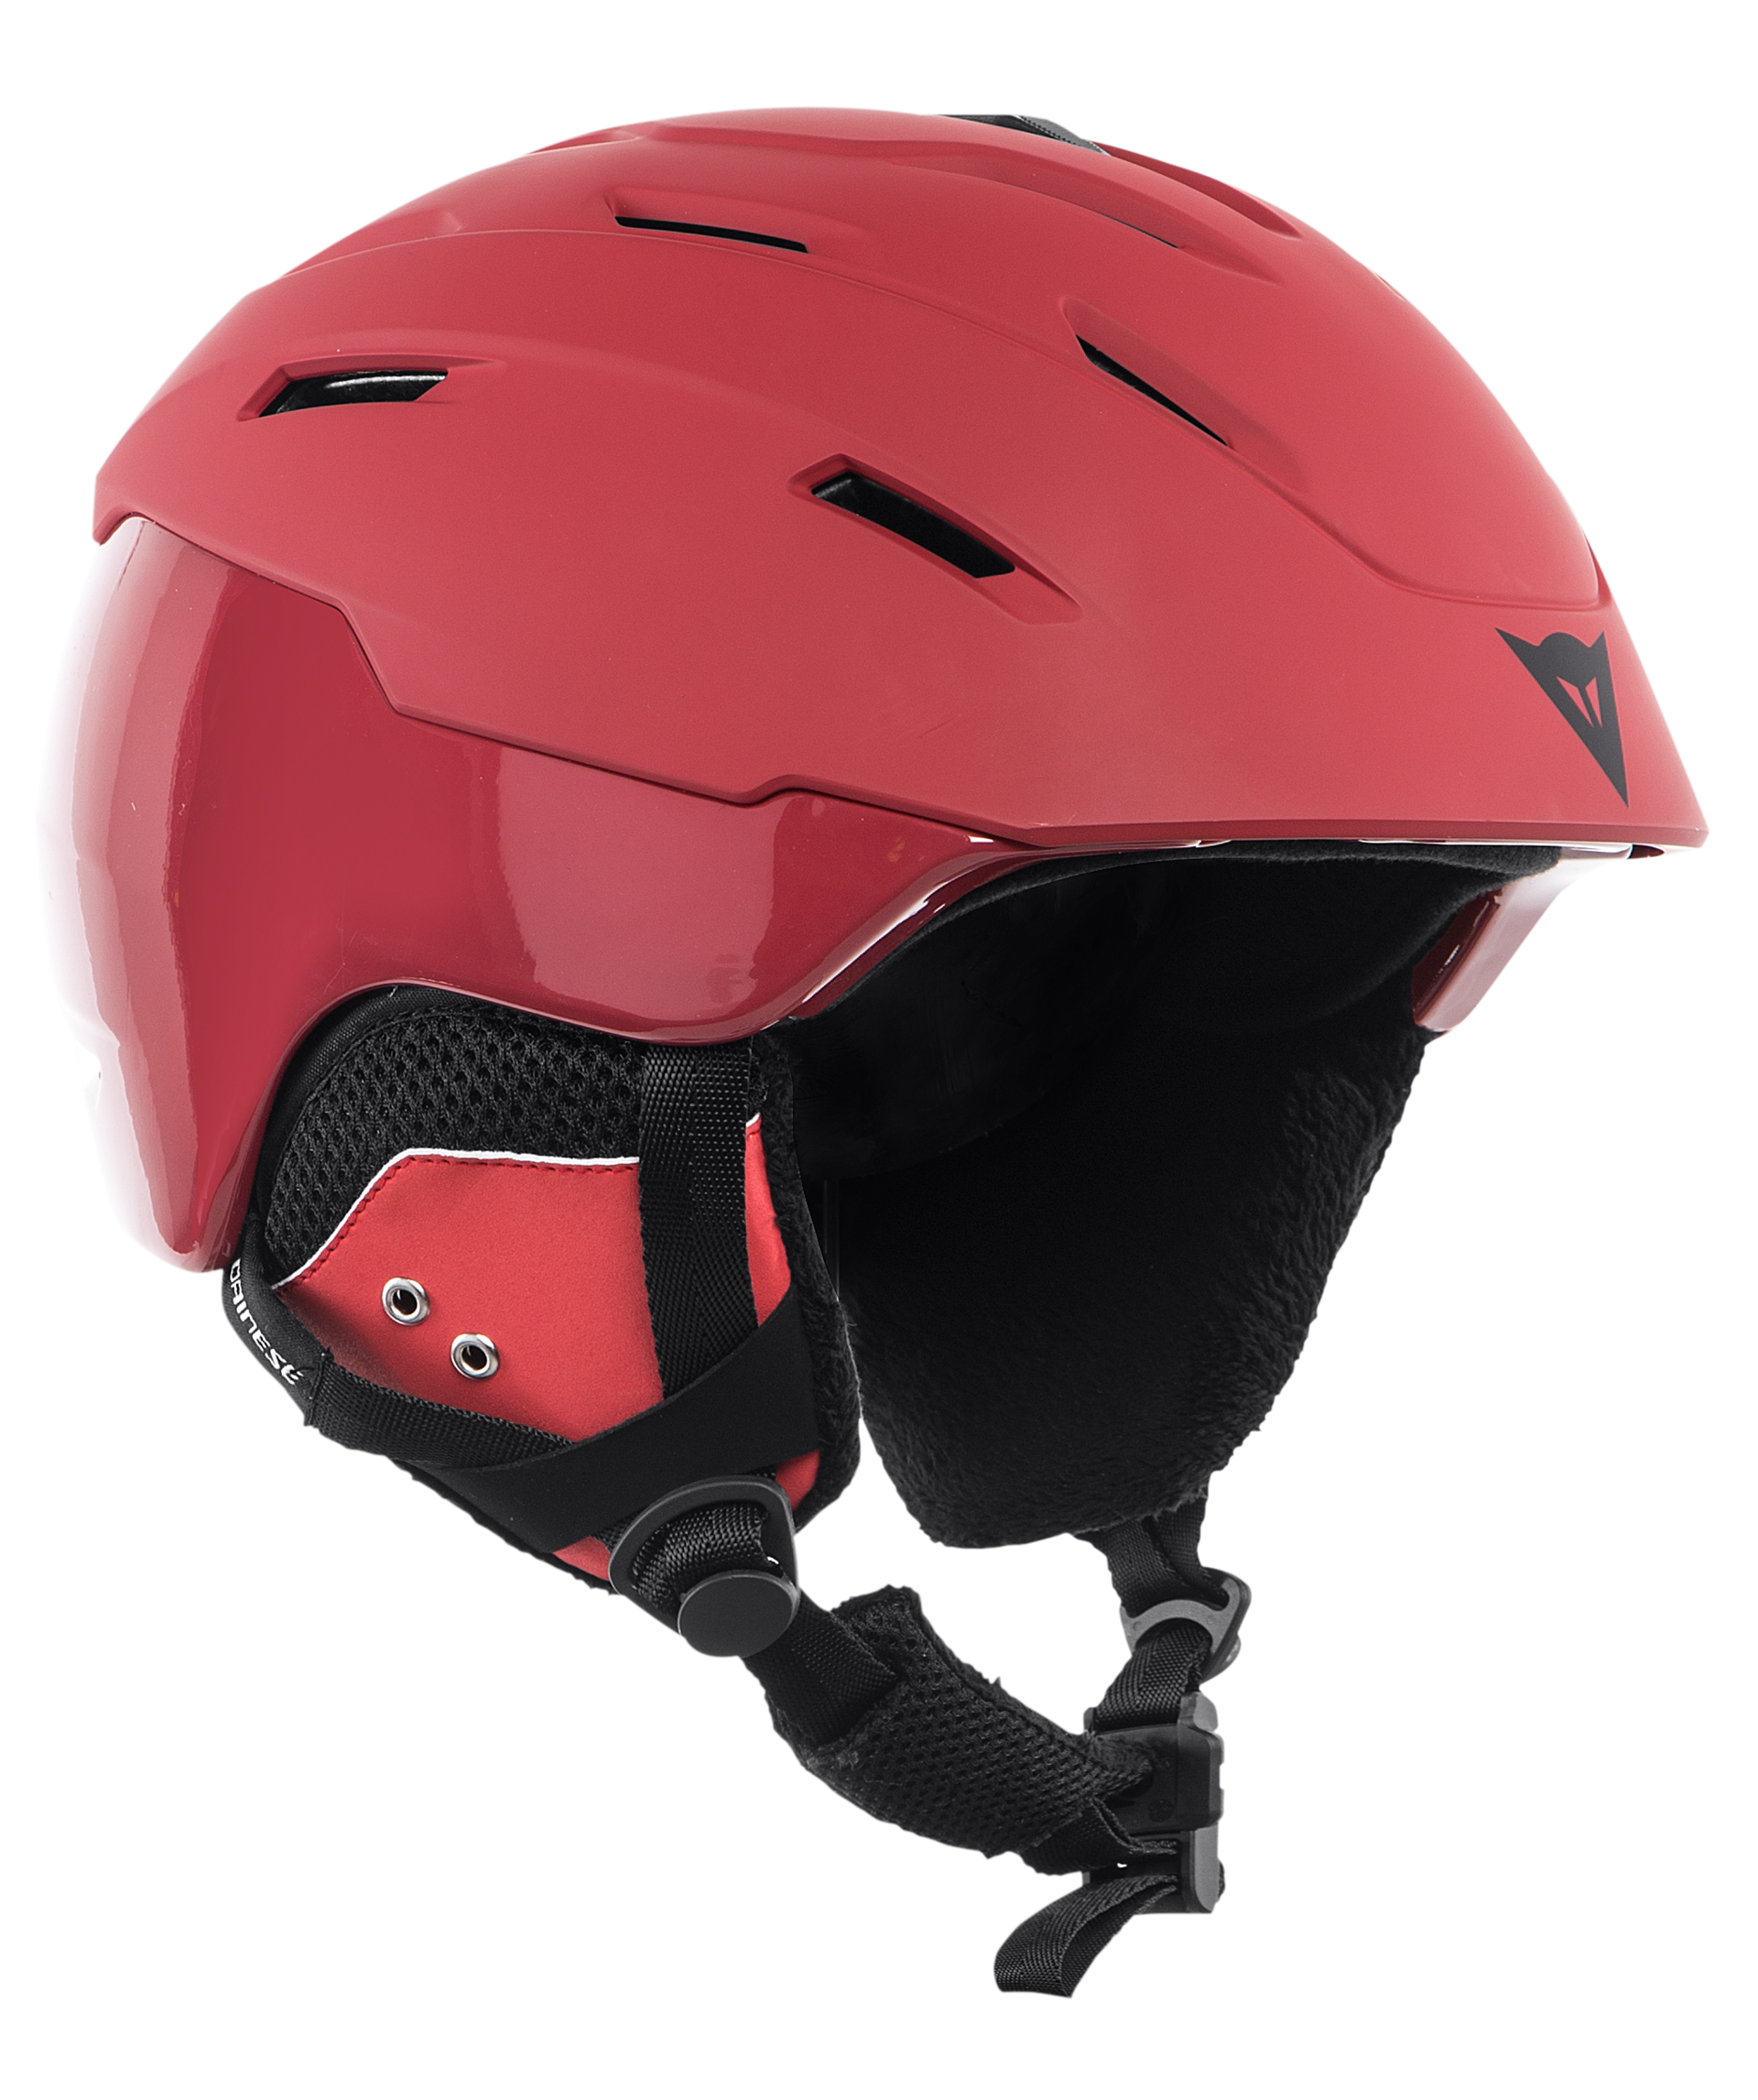 DAINESE CASCO BRID CHILI PEPPER/CHILI PEPER 58 A- 2019